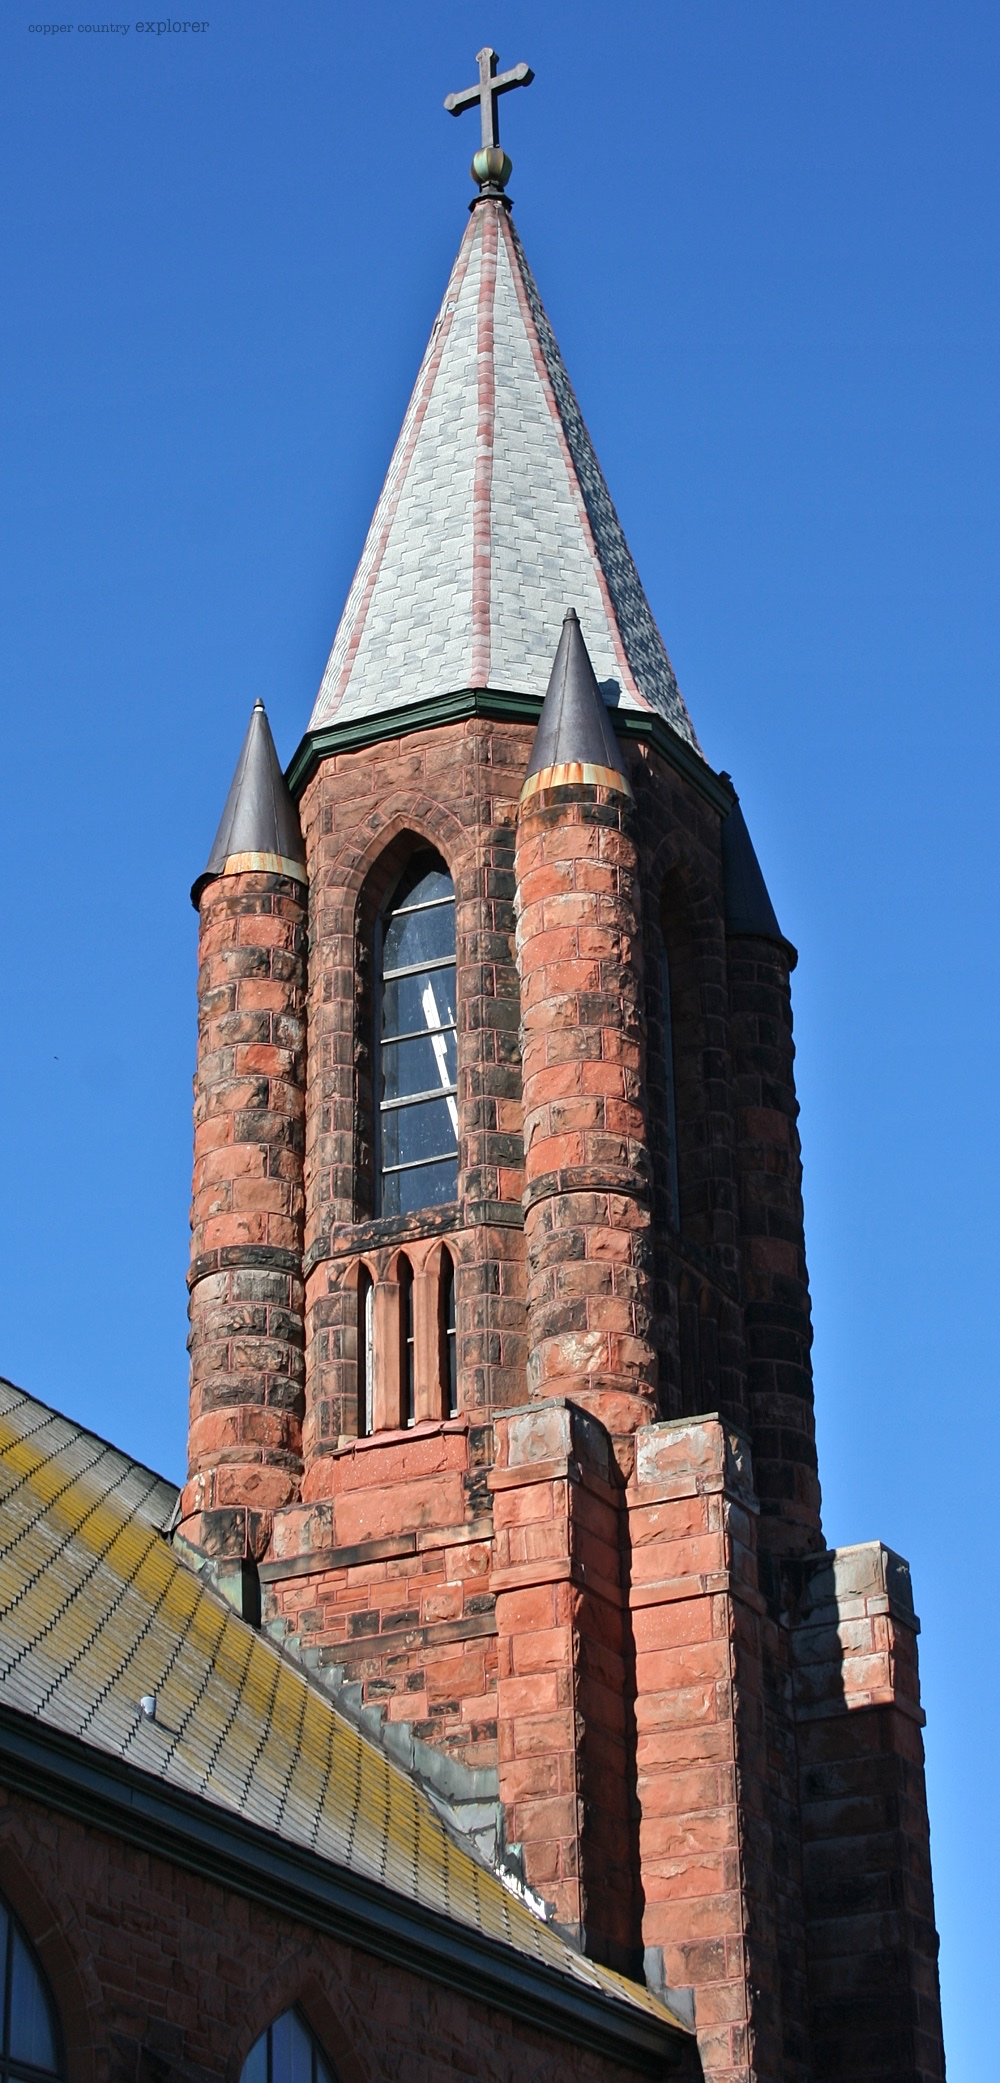 The Tower of St. Anne's Church, Calumet